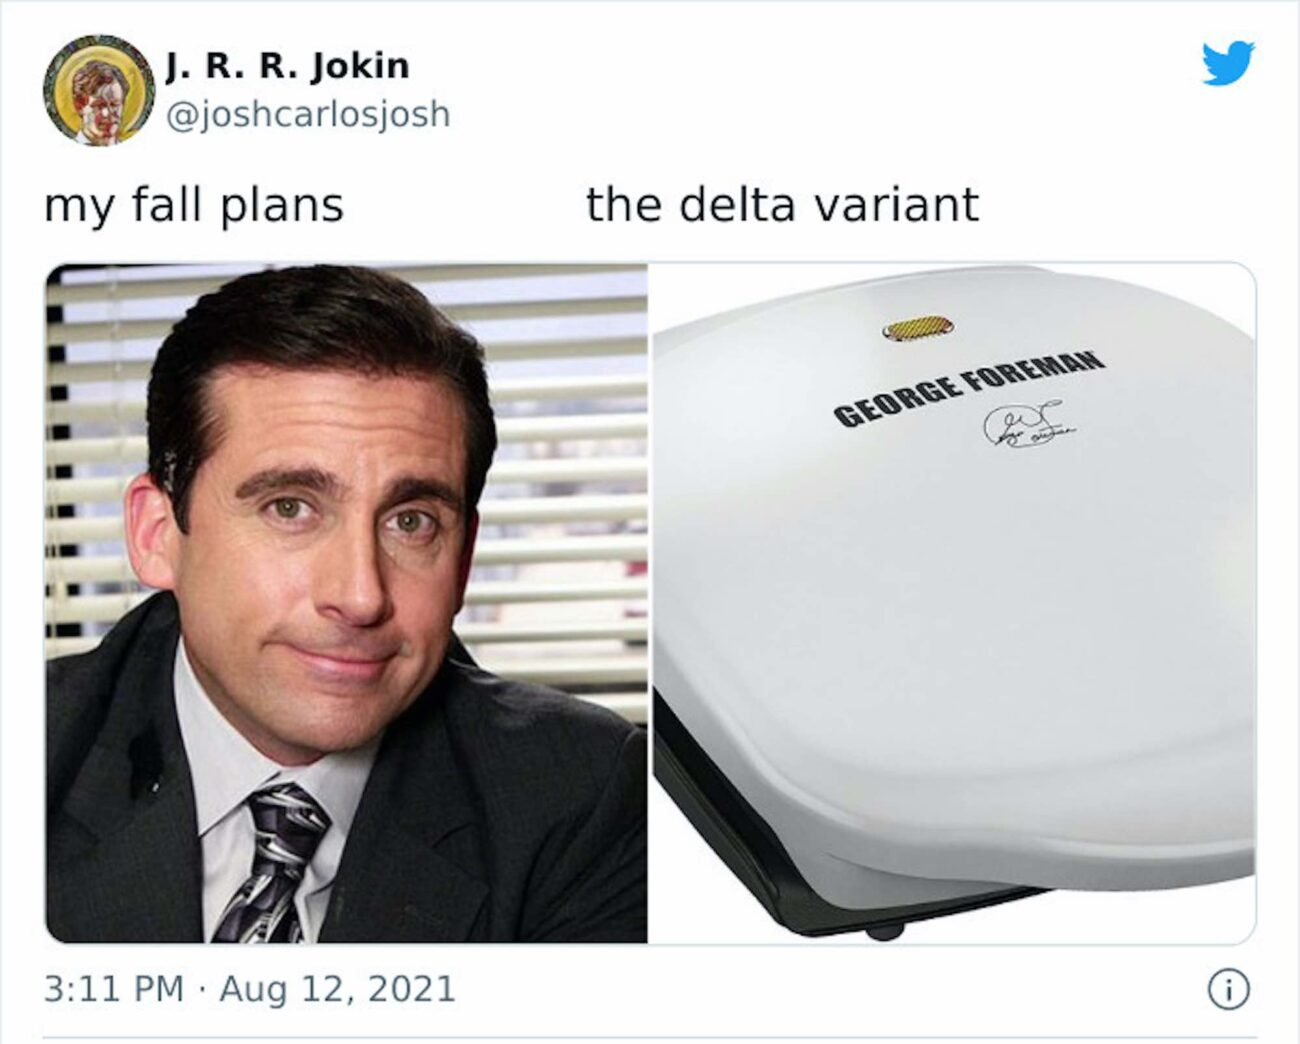 Shock! Horror! Who will win in the Fall vs the Delta variant showdown? Go through these hilarious memes to see who people think the winner is.